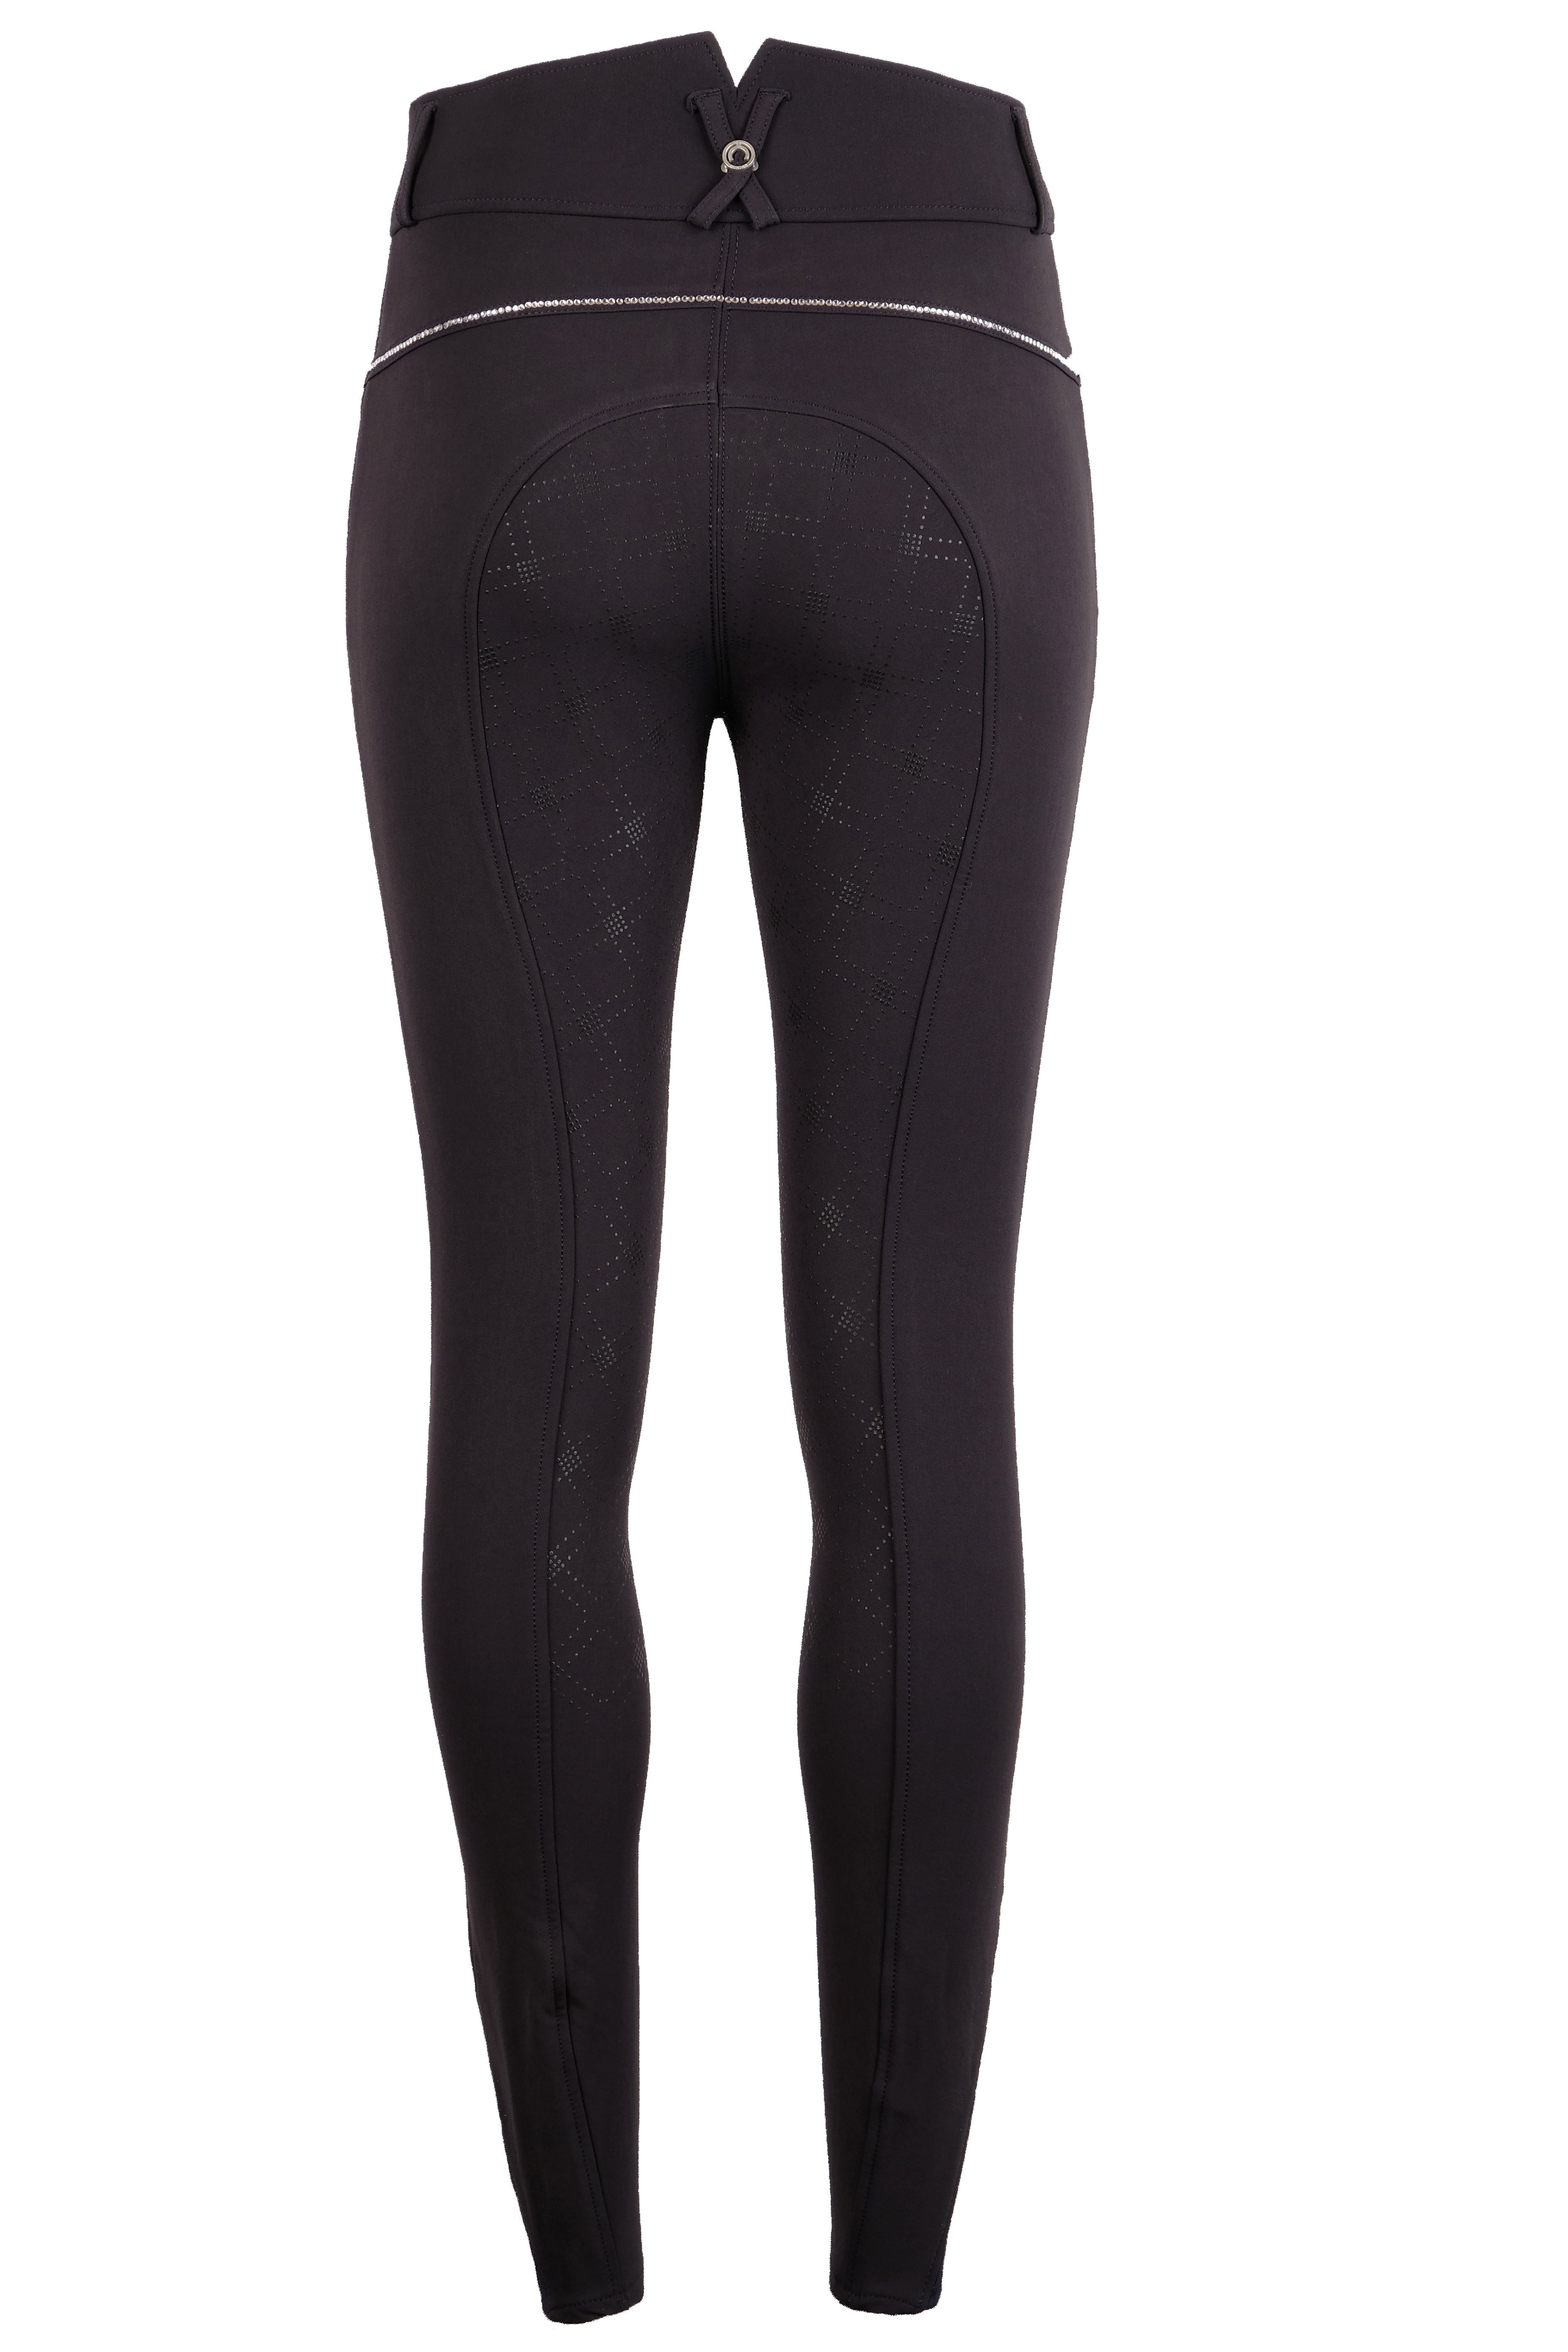 21110-73 Romy Crystal Lines Breeches Navy Back.jpg